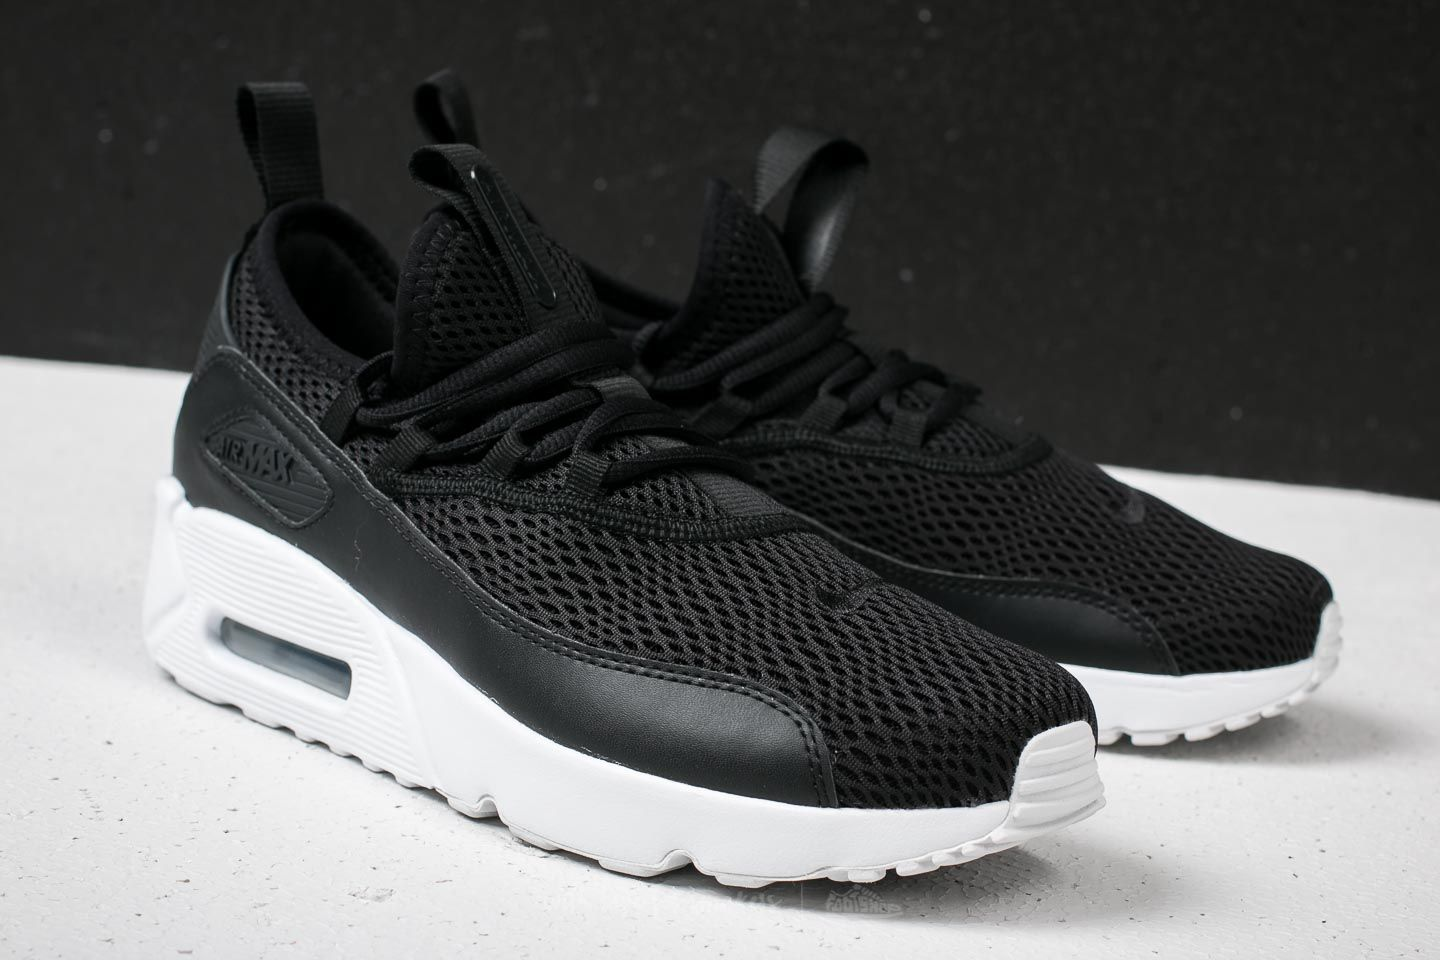 0b30a4d2a1036 ... discount code for nike air max 90 ez gs black black white a muy buen  53414